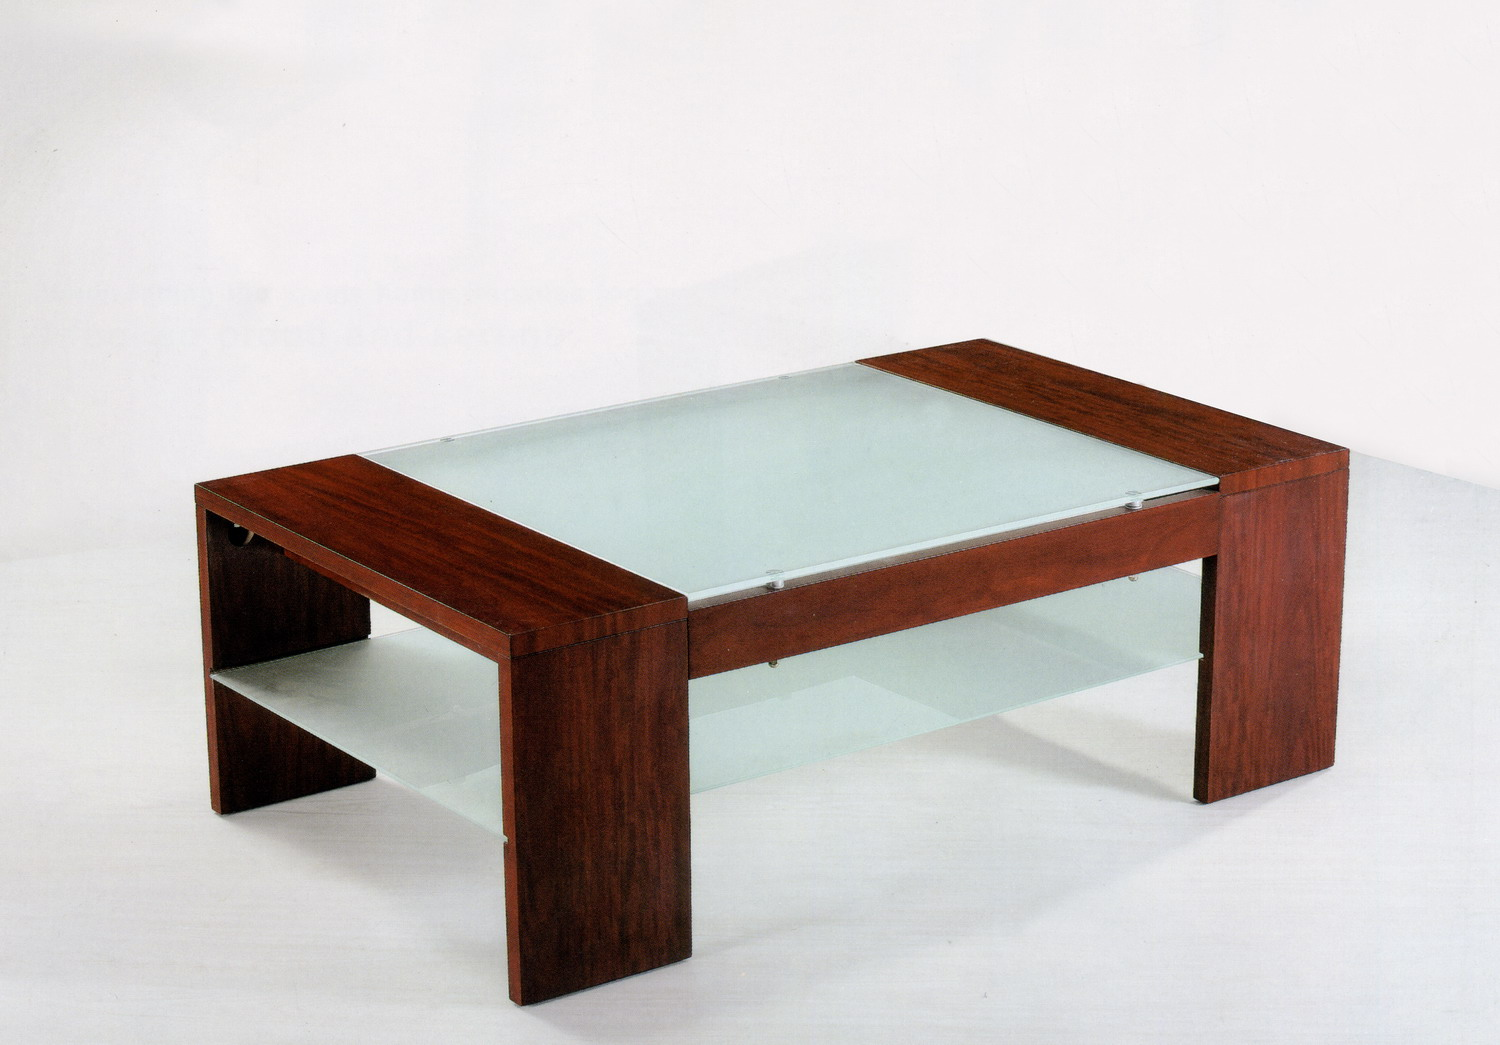 popular coffee table wood and glass furniture - coffee table wood and glass complete with a premotech motor and a regatonearm this ones